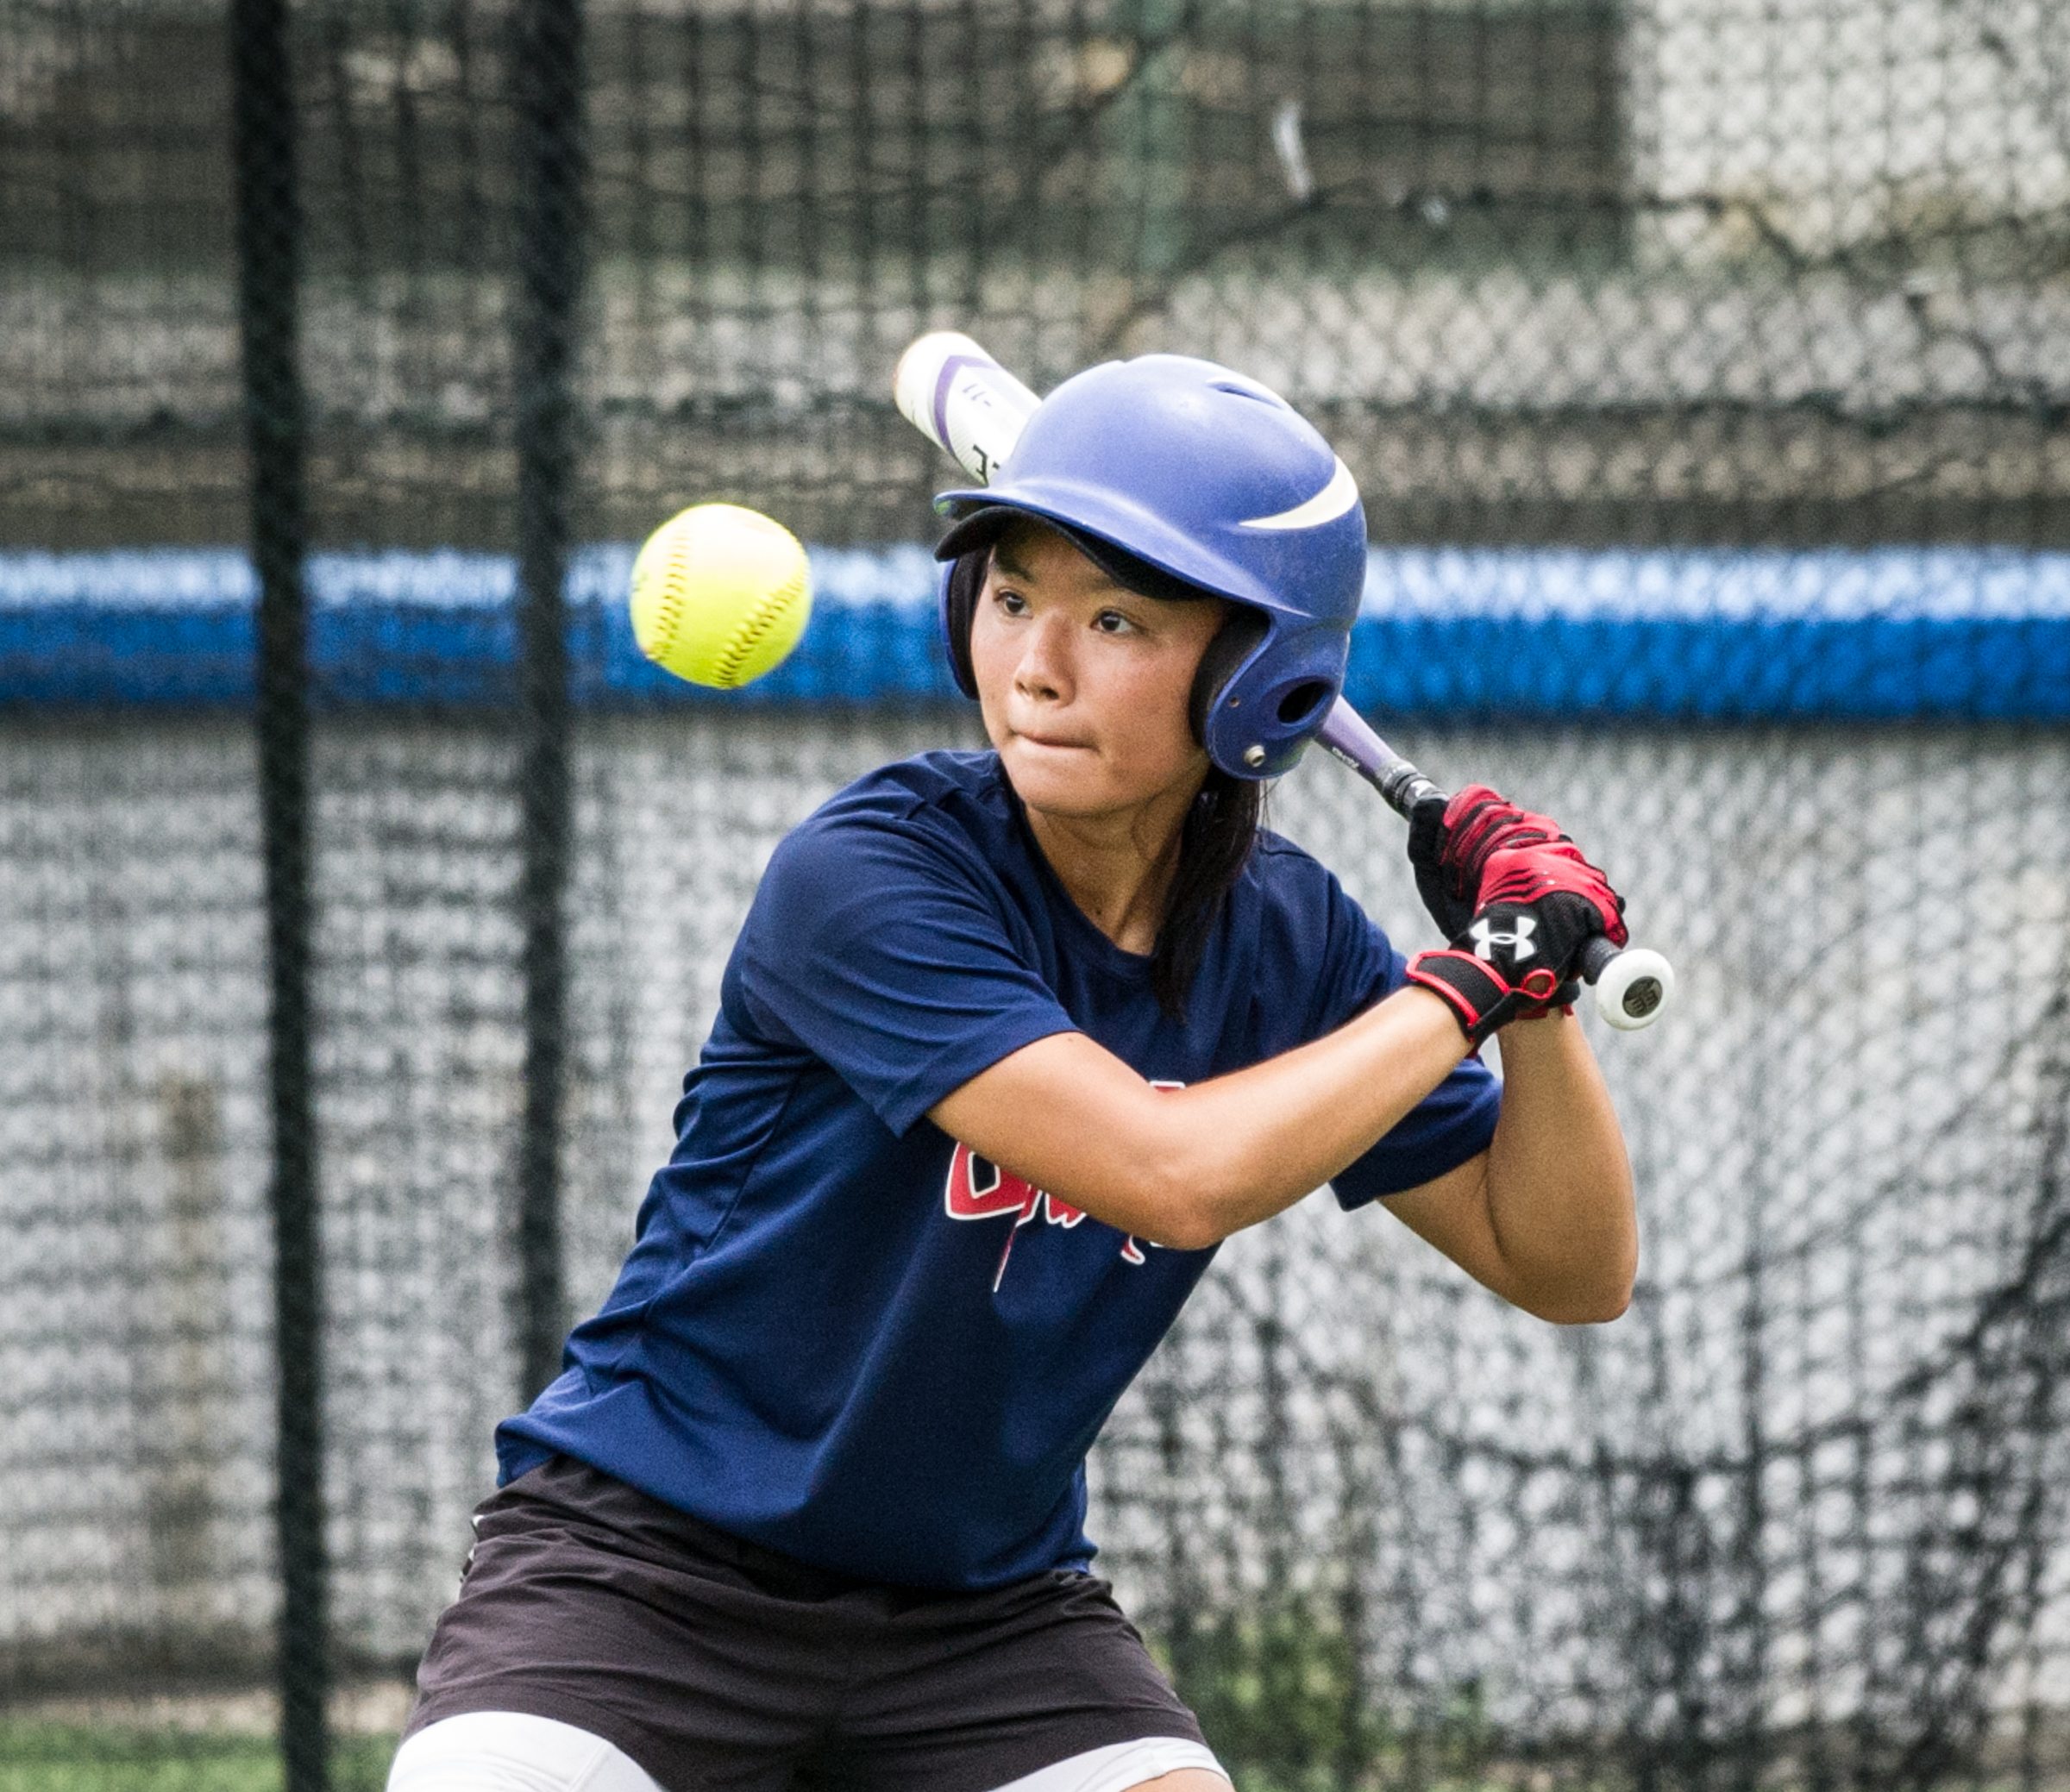 A Singaporean player prepares to hit the ball during the ORA Gryphon Cup slow pitch tournament at Raffles Institution.